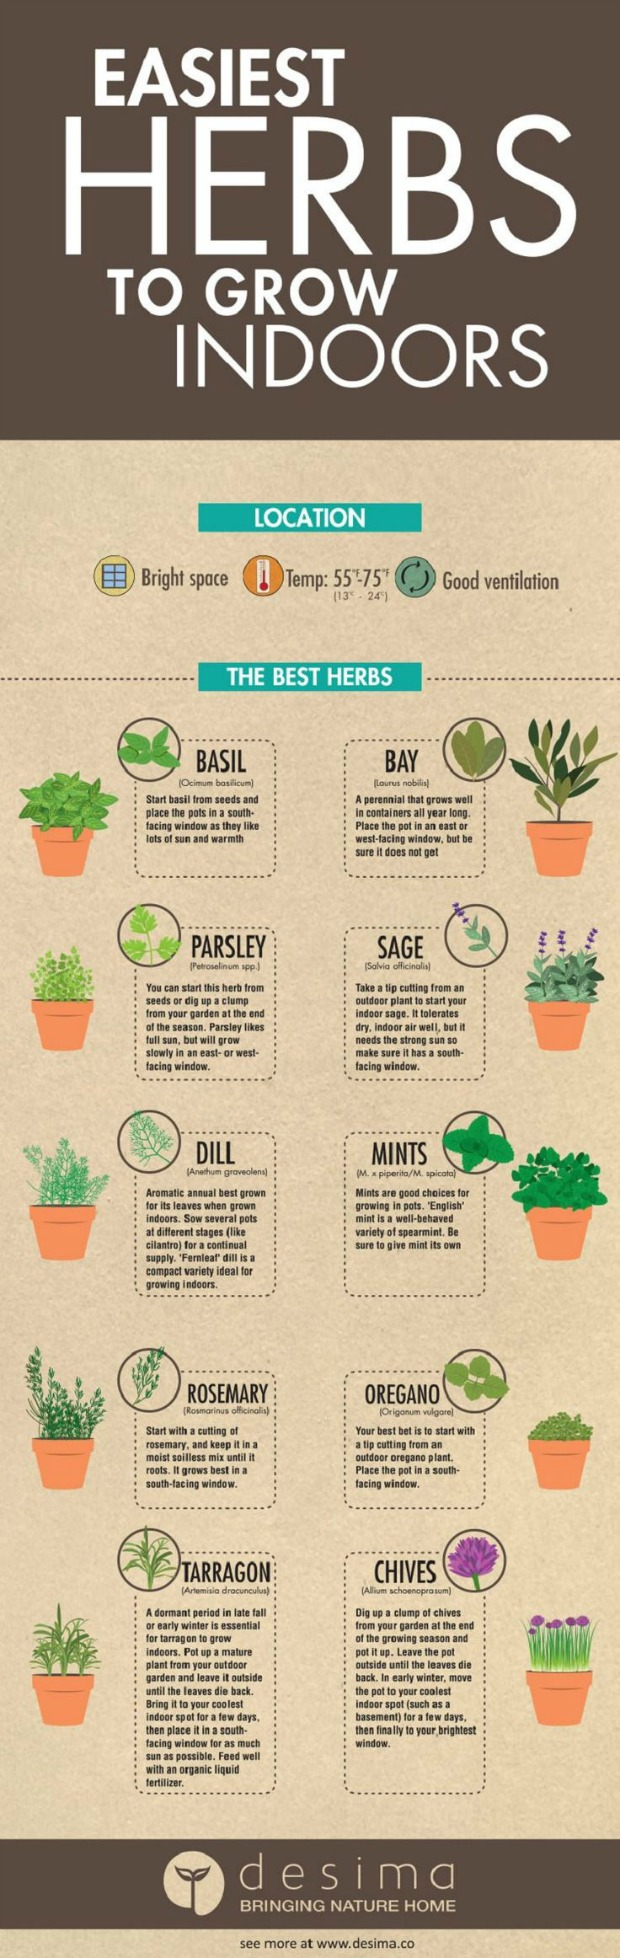 Indoor Herbs